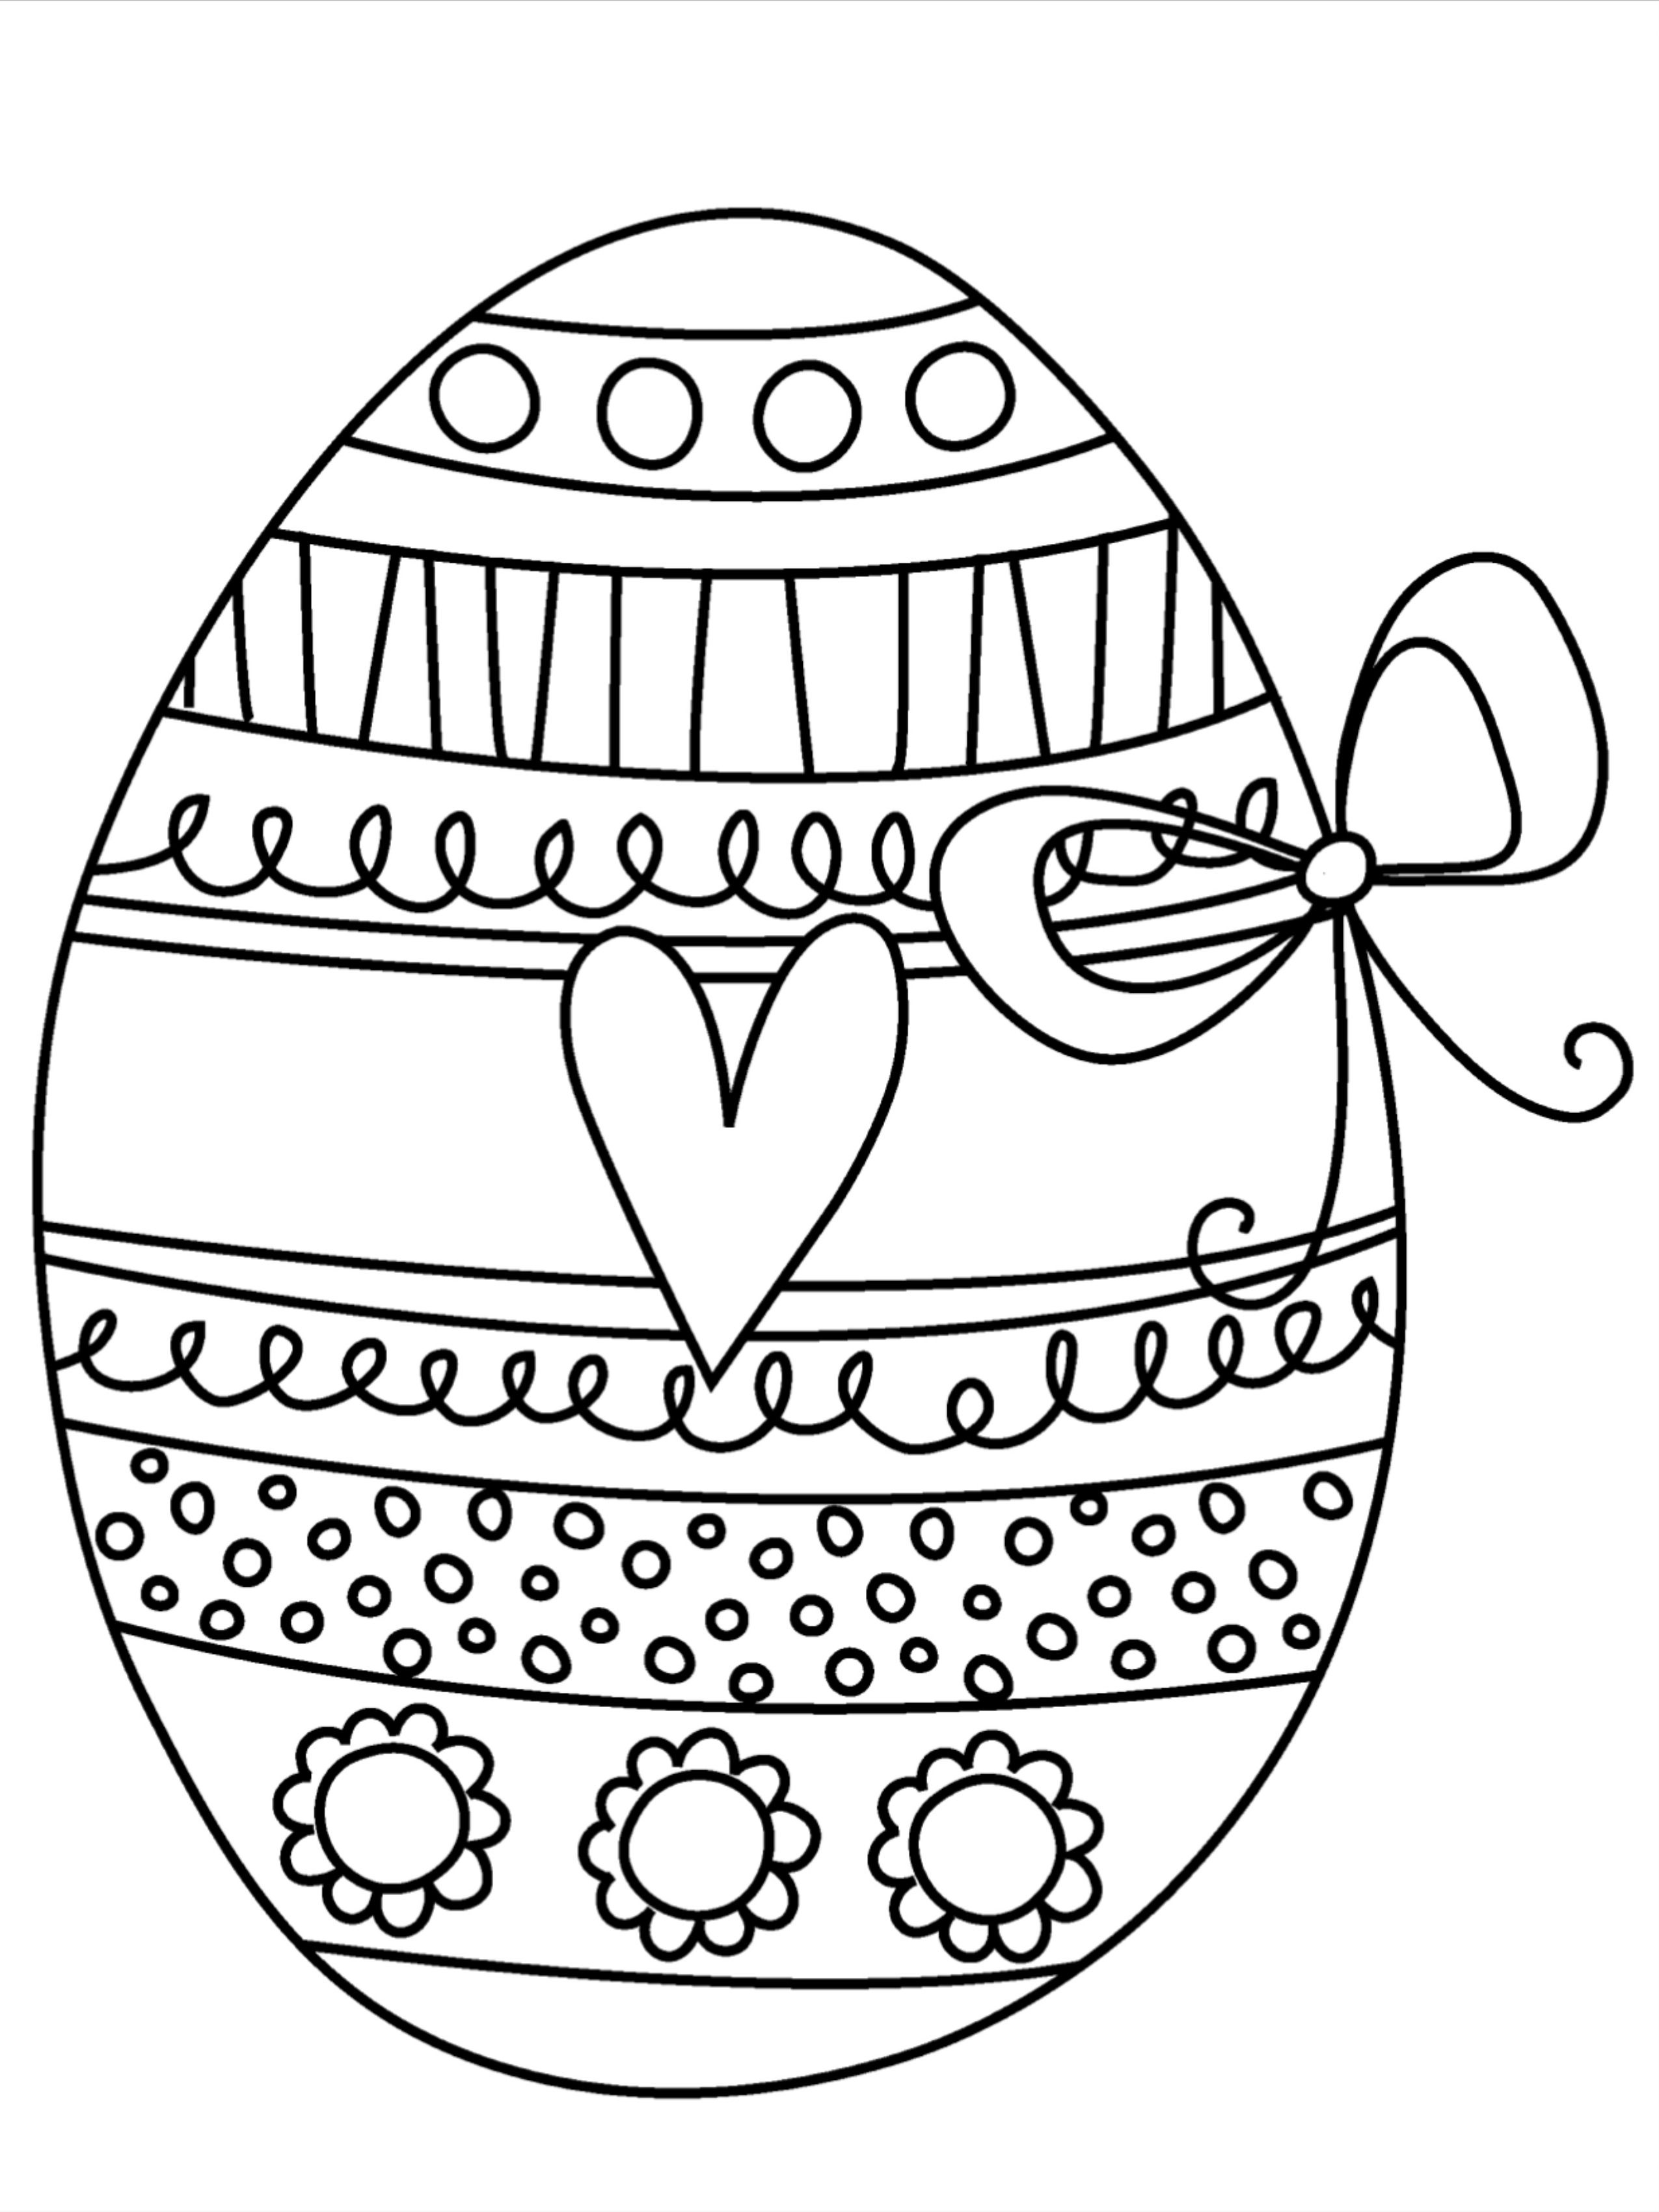 50 Easter Coloring Pages For Kids In 2021 Easter Coloring Pages Coloring Pages For Kids Easy Coloring Pages